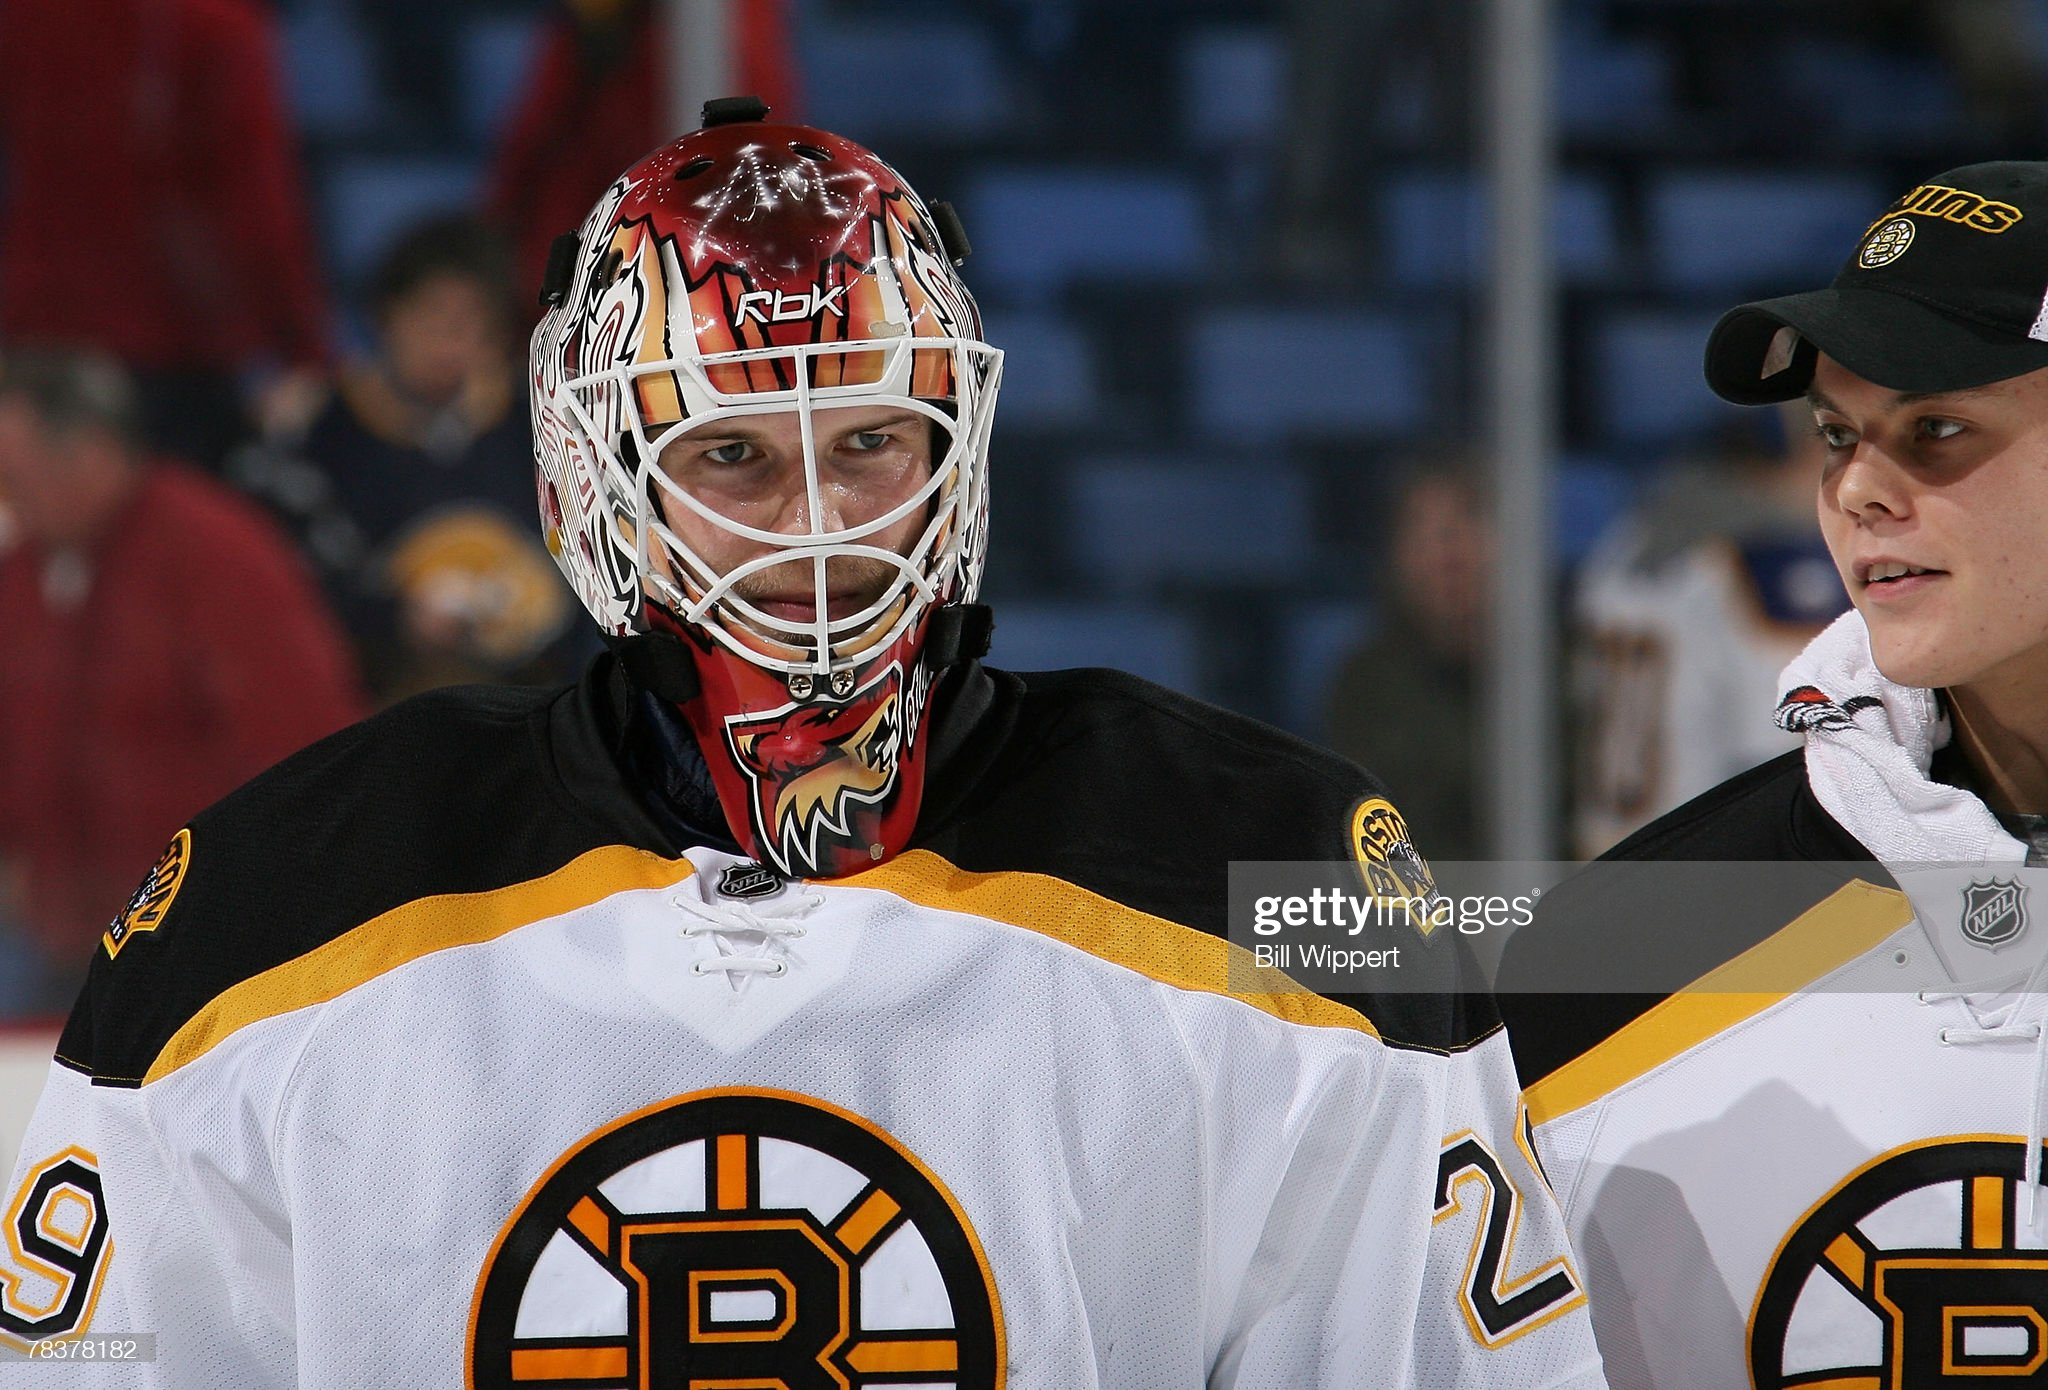 alex-auld-of-the-boston-bruins-wears-his